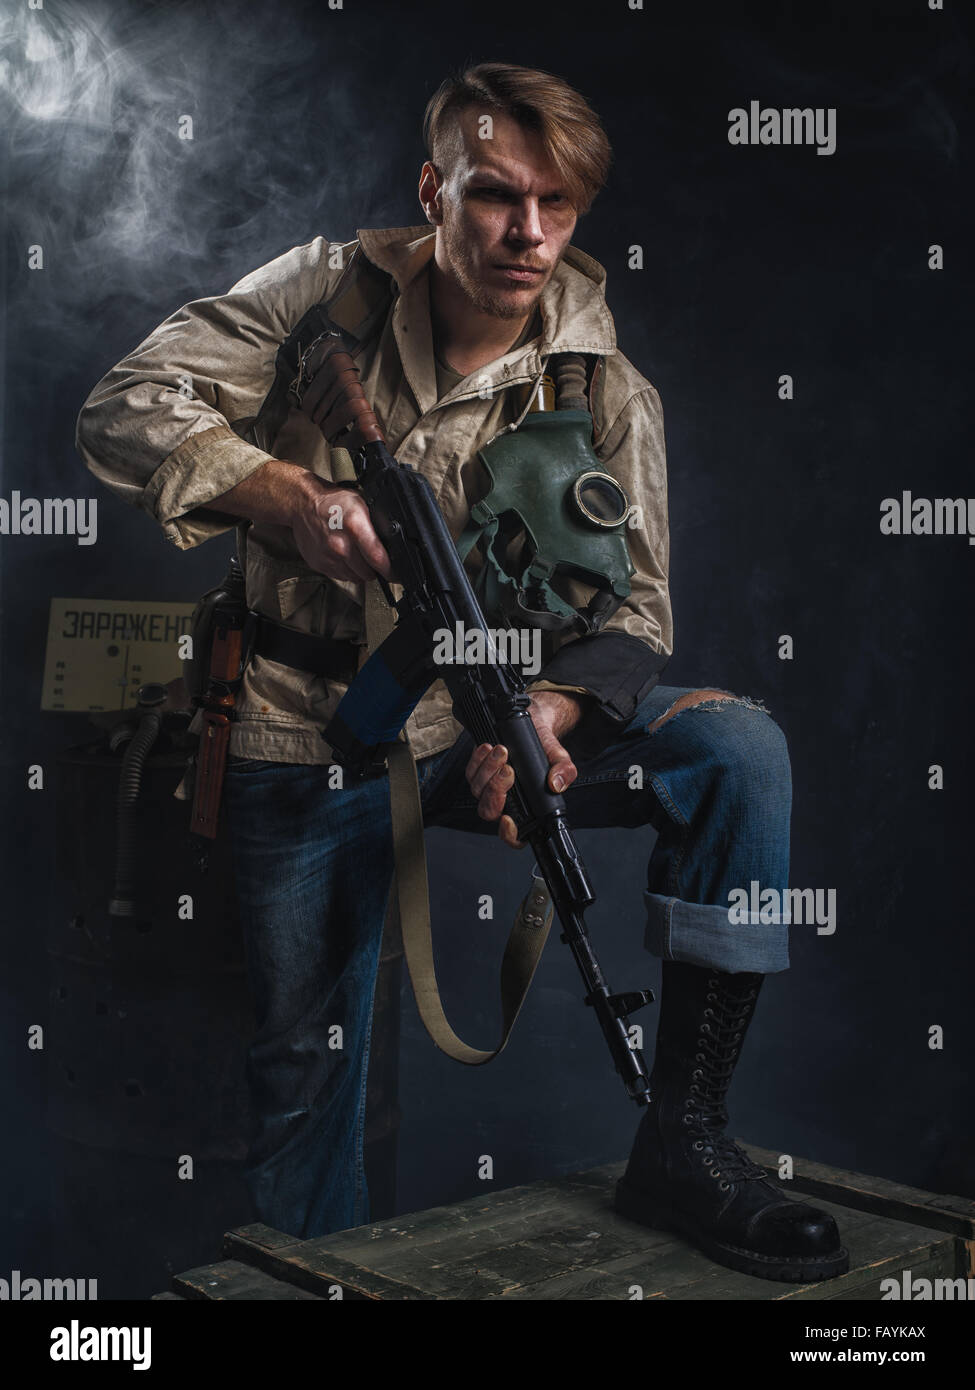 Armed man with a gun. Post-apocalyptic fiction. Stalker. - Stock Image